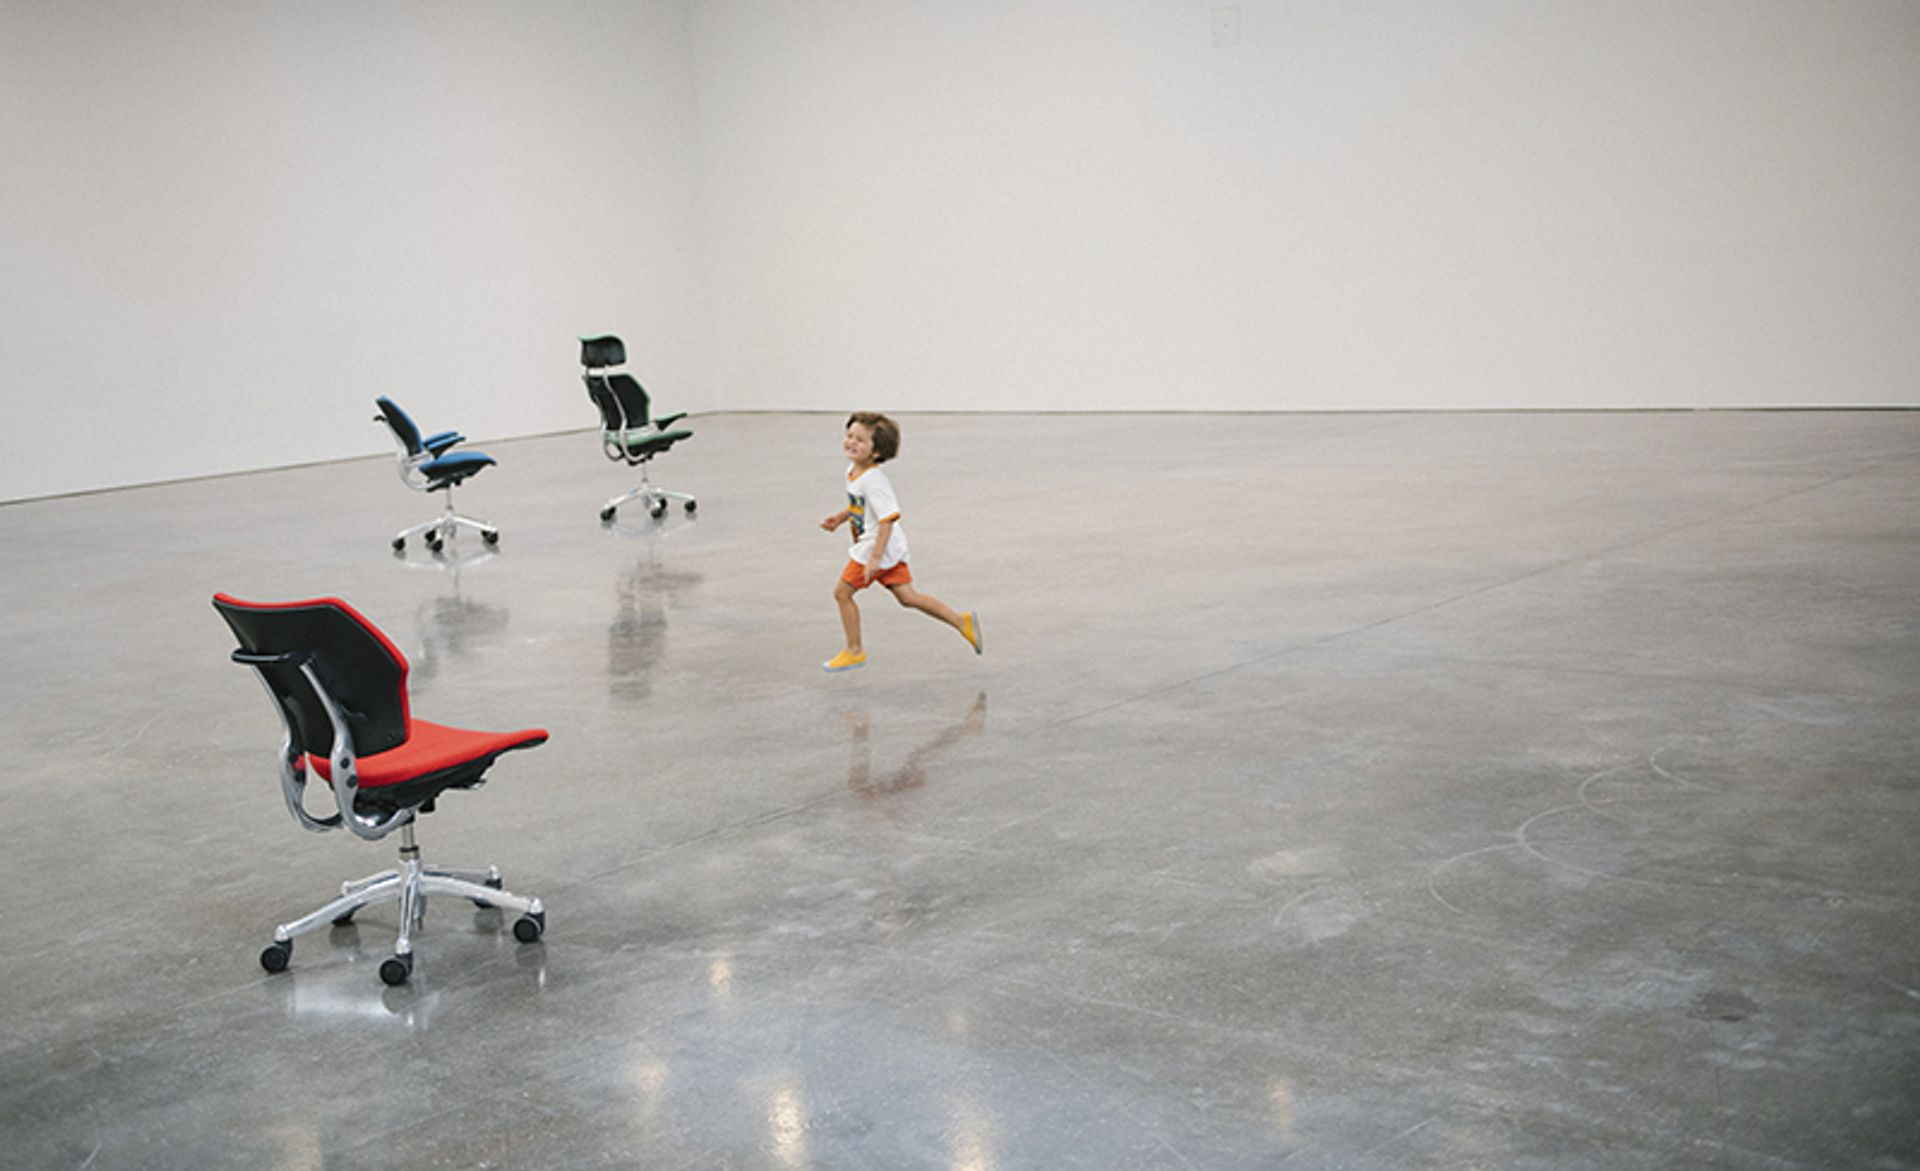 Installation view of Urs Fischer: PLAY at Gagosian Photo: Chad Moore, © Urs Fischer; courtesy of Gagosian